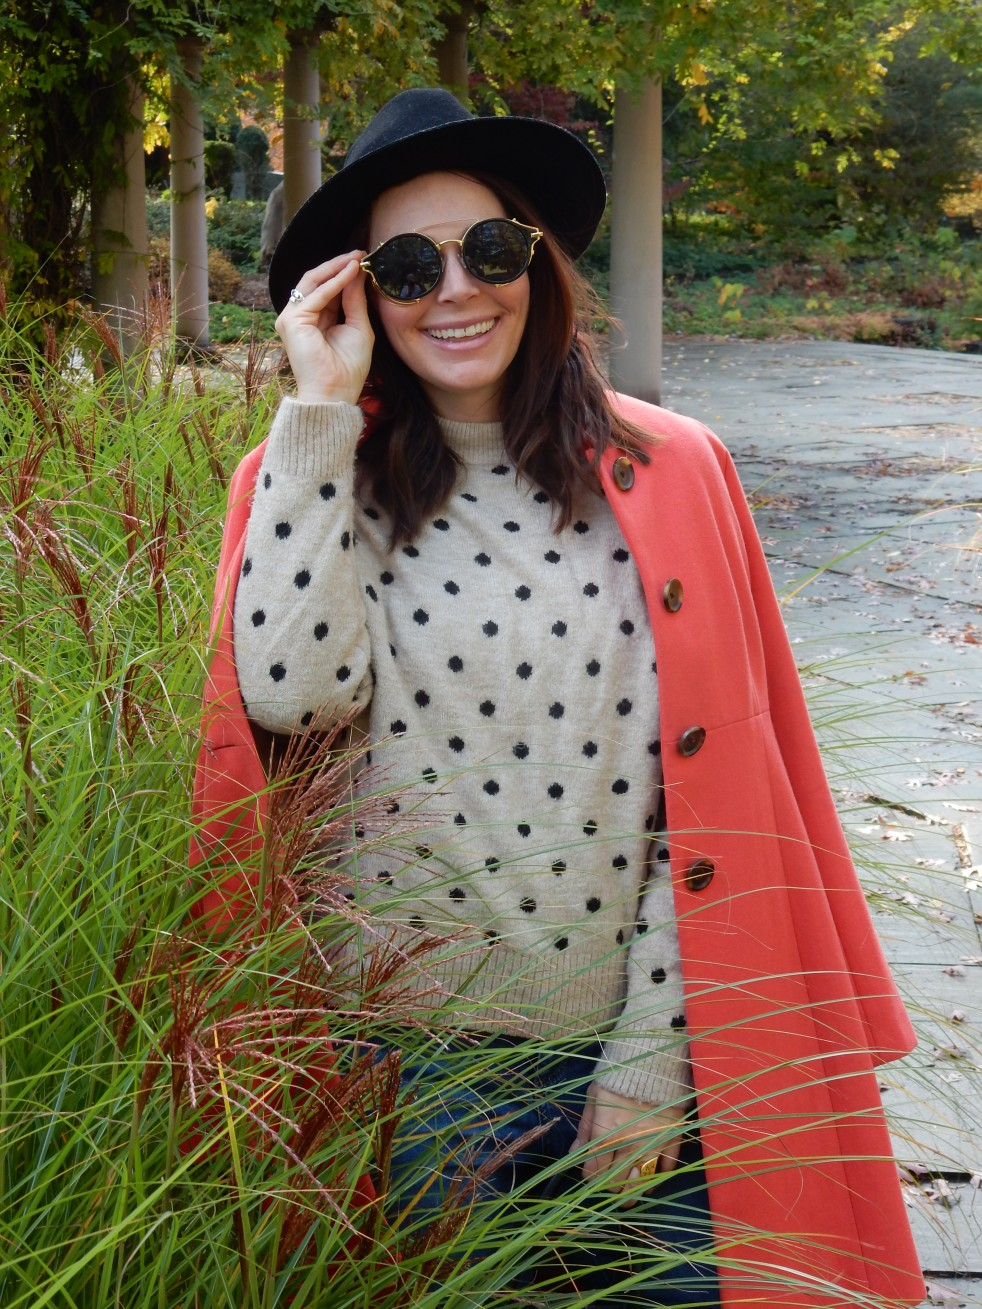 Sarah In Style, Coral Coat, Colorful Winter Coats, J. Crew Coat, Best Winter Coats, Best Winter Jackets, Fashion for your Mood, Mood Booster, Fashion Inspiration, Winter Fashion Tips, How to Dress in Winter, Best Coats 2020, Blogger Fashion Tips, Blogger Winter Fashion, Women's Goggle Sunglasses, Black Studded Booties, Chunky Sweaters, Styling Hats, Unique Sunglasses, Vintage Sunglasses, Winter Styling Tips, Stand Out Fashion, Stand out in Winter, Chicago Fashion, pop of color, color in wardrobe, peppy color in winter, winter pops of color